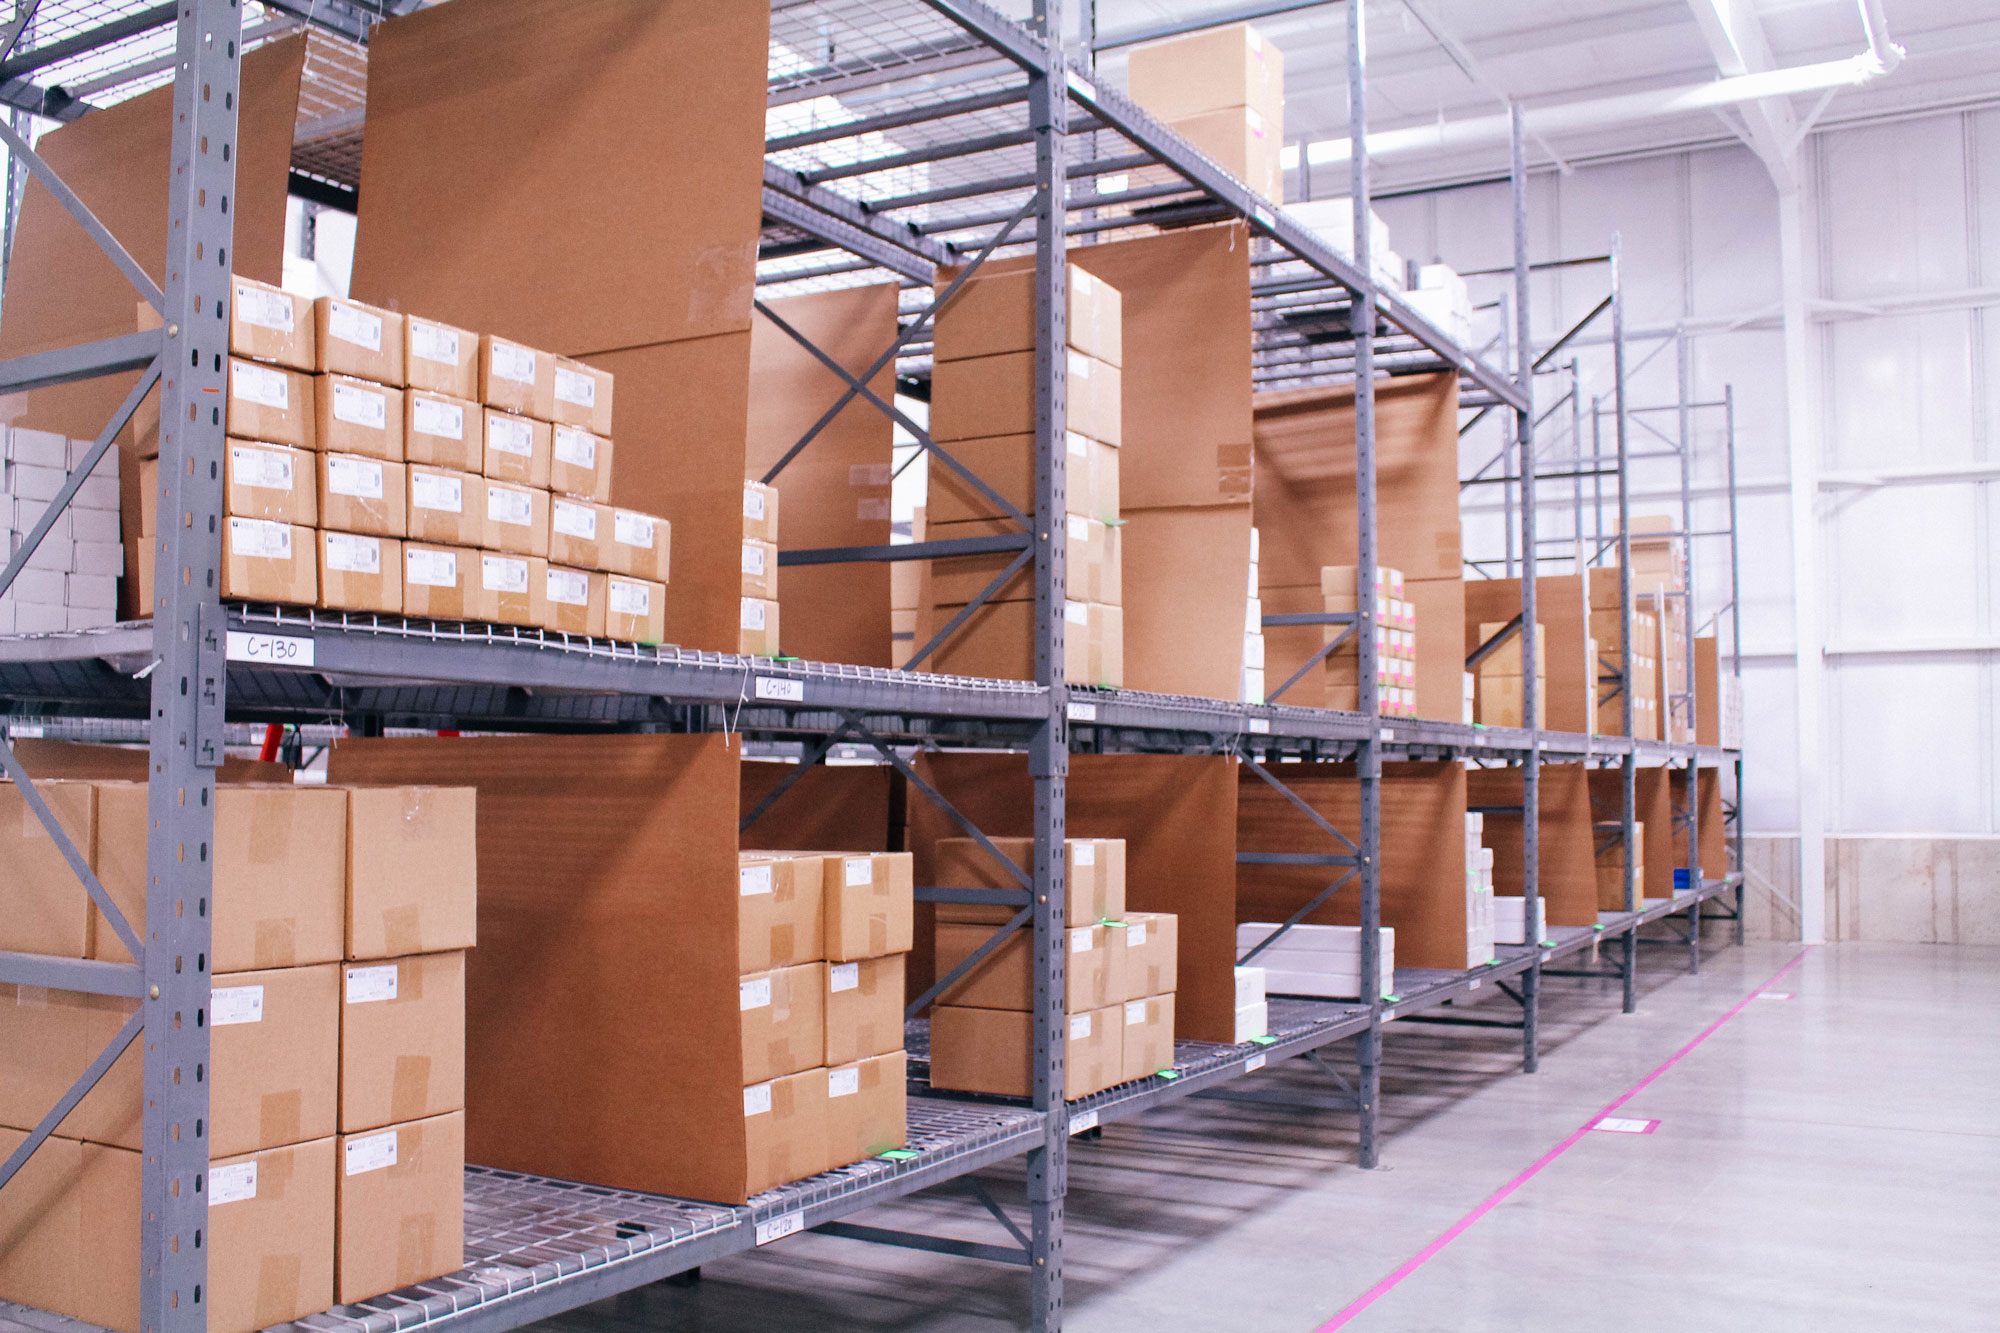 An image of a MediSurge warehousing facility.